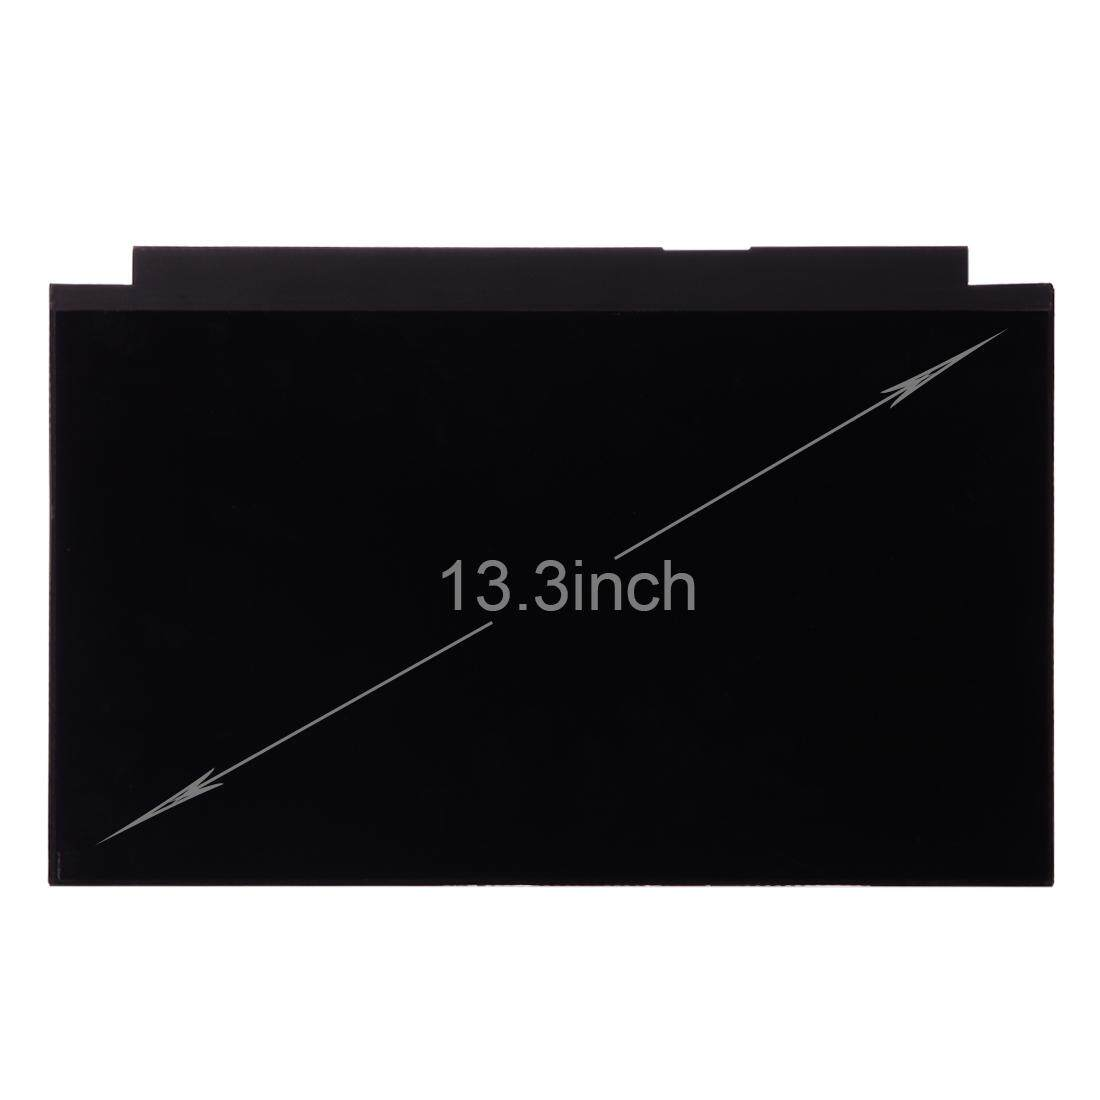 LP133WF4SPB1 13.3 inch 16:9 High Resolution 1920 x 1080 Laptop Screens LED TFT Panels